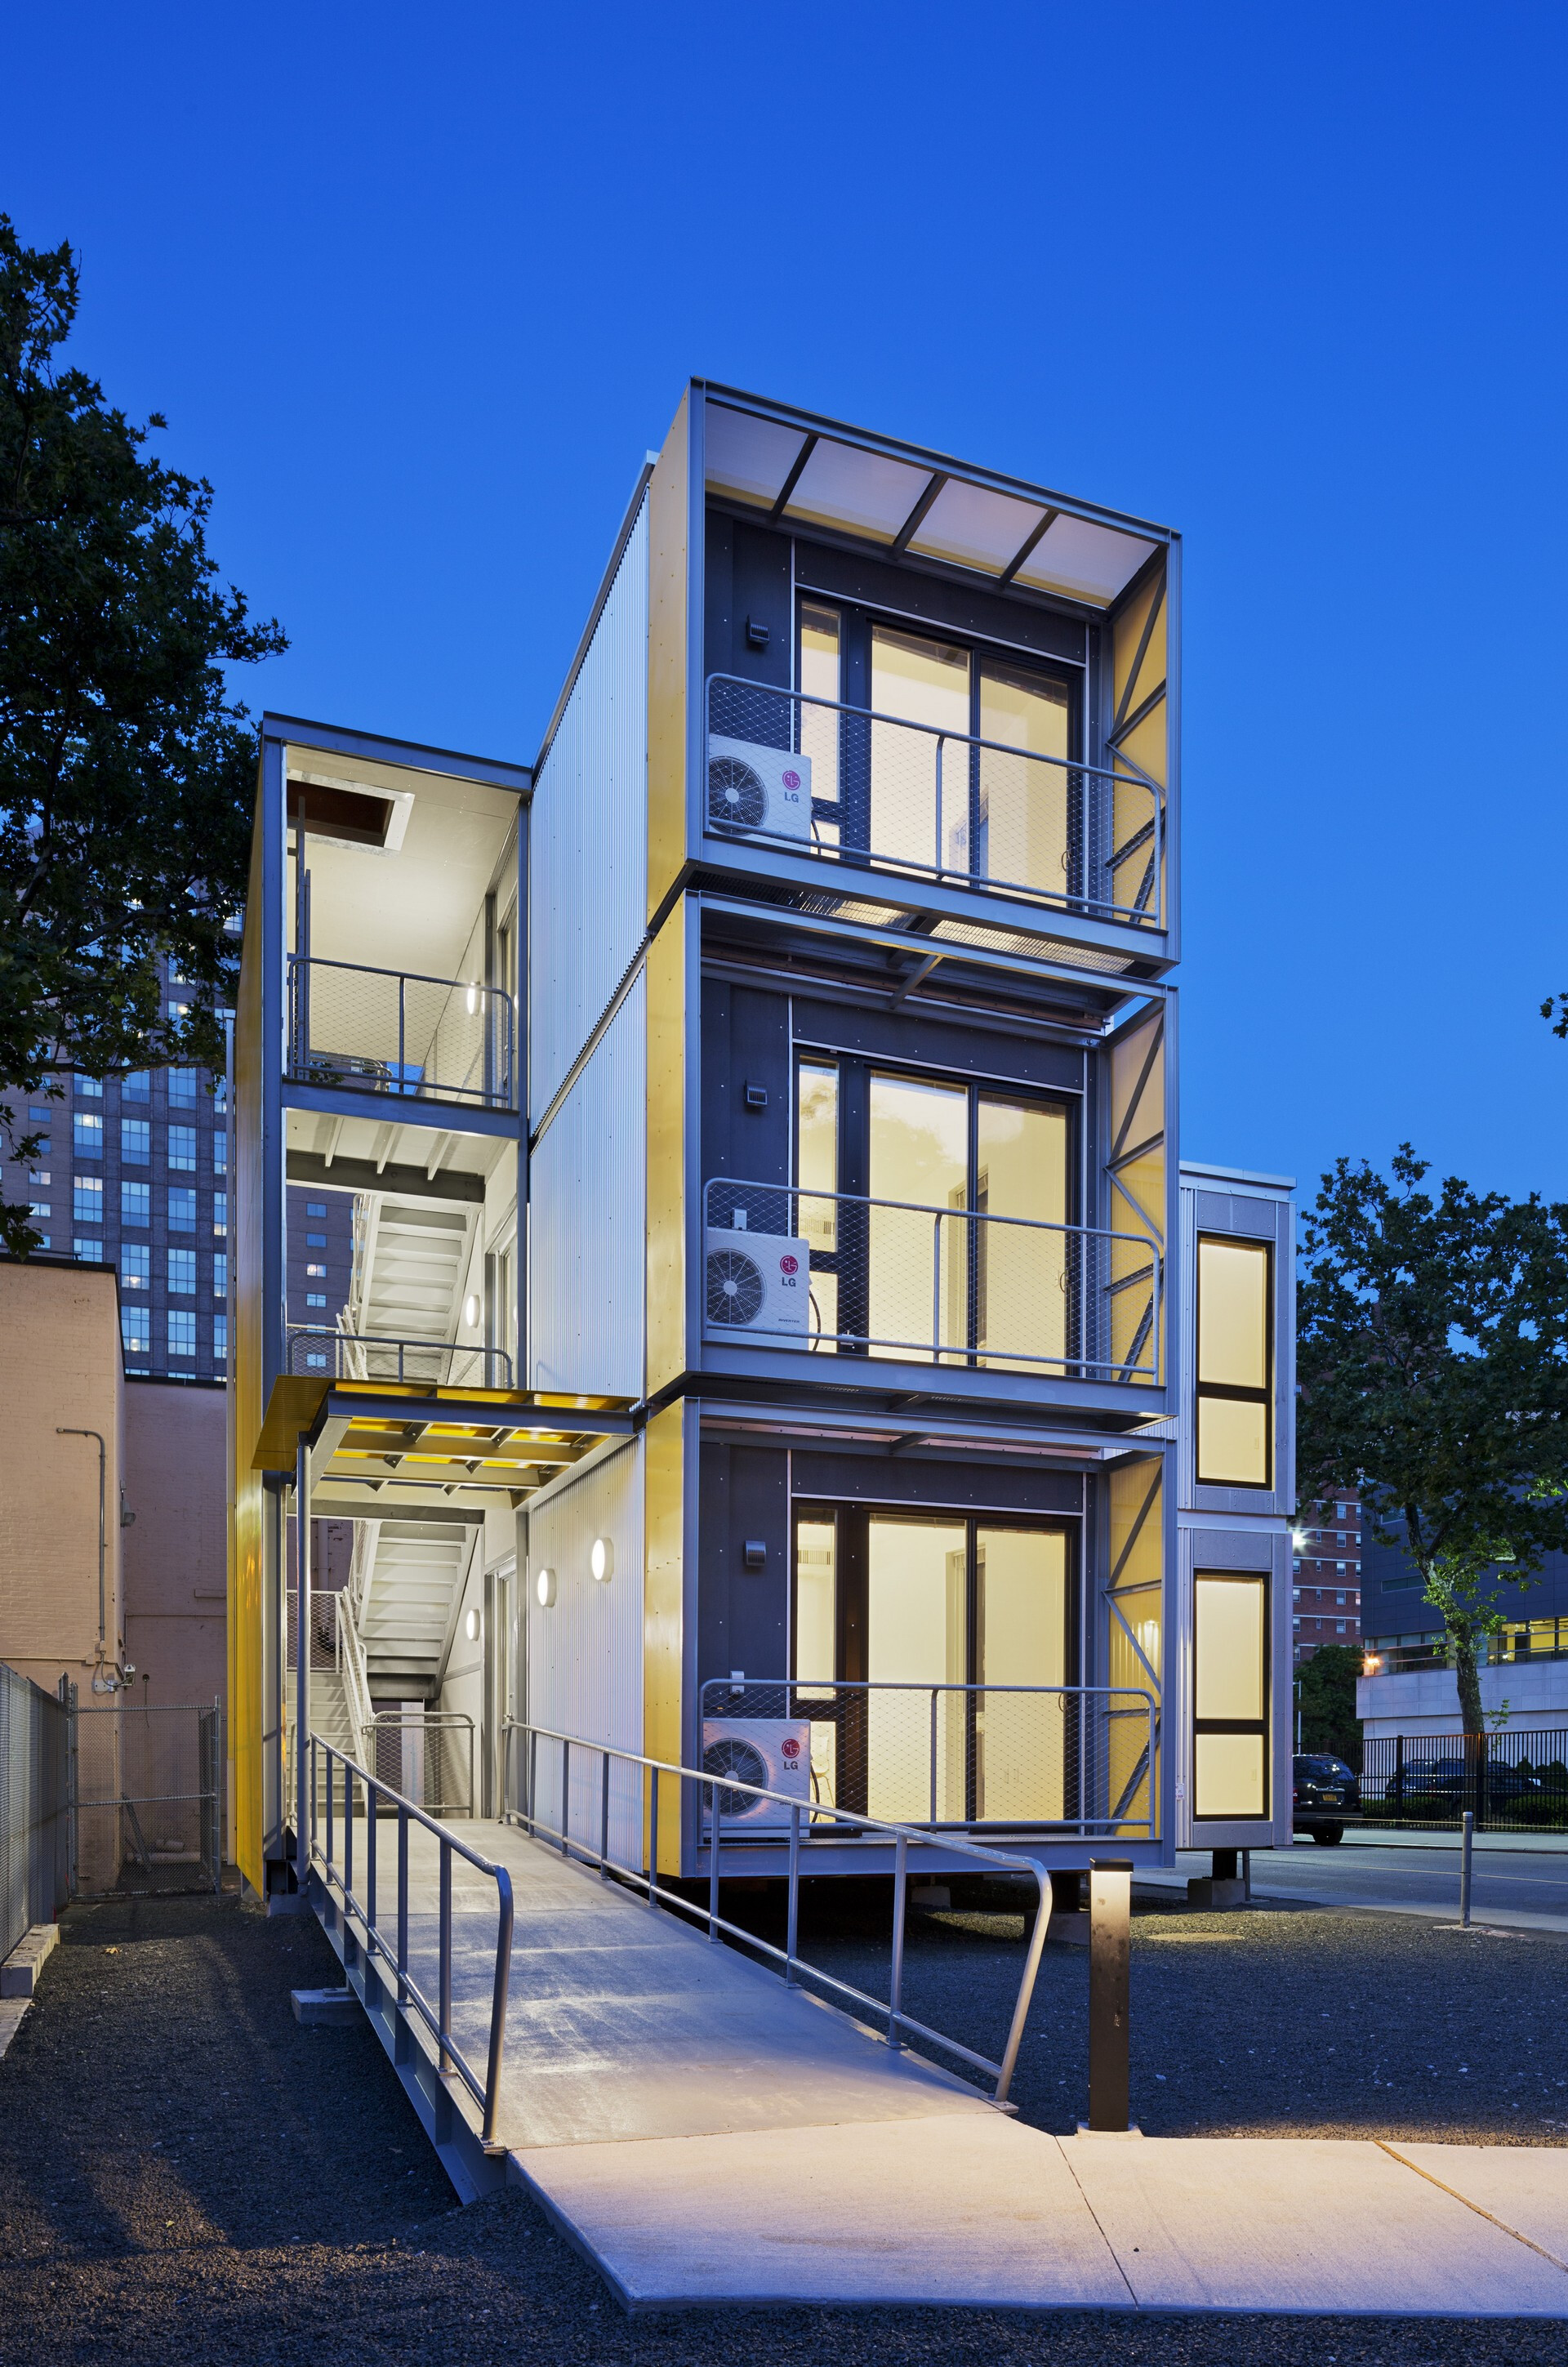 Prototype Affordable Housing For 21st >> Urban Post Disaster Housing Prototype Garrison Architects Archello